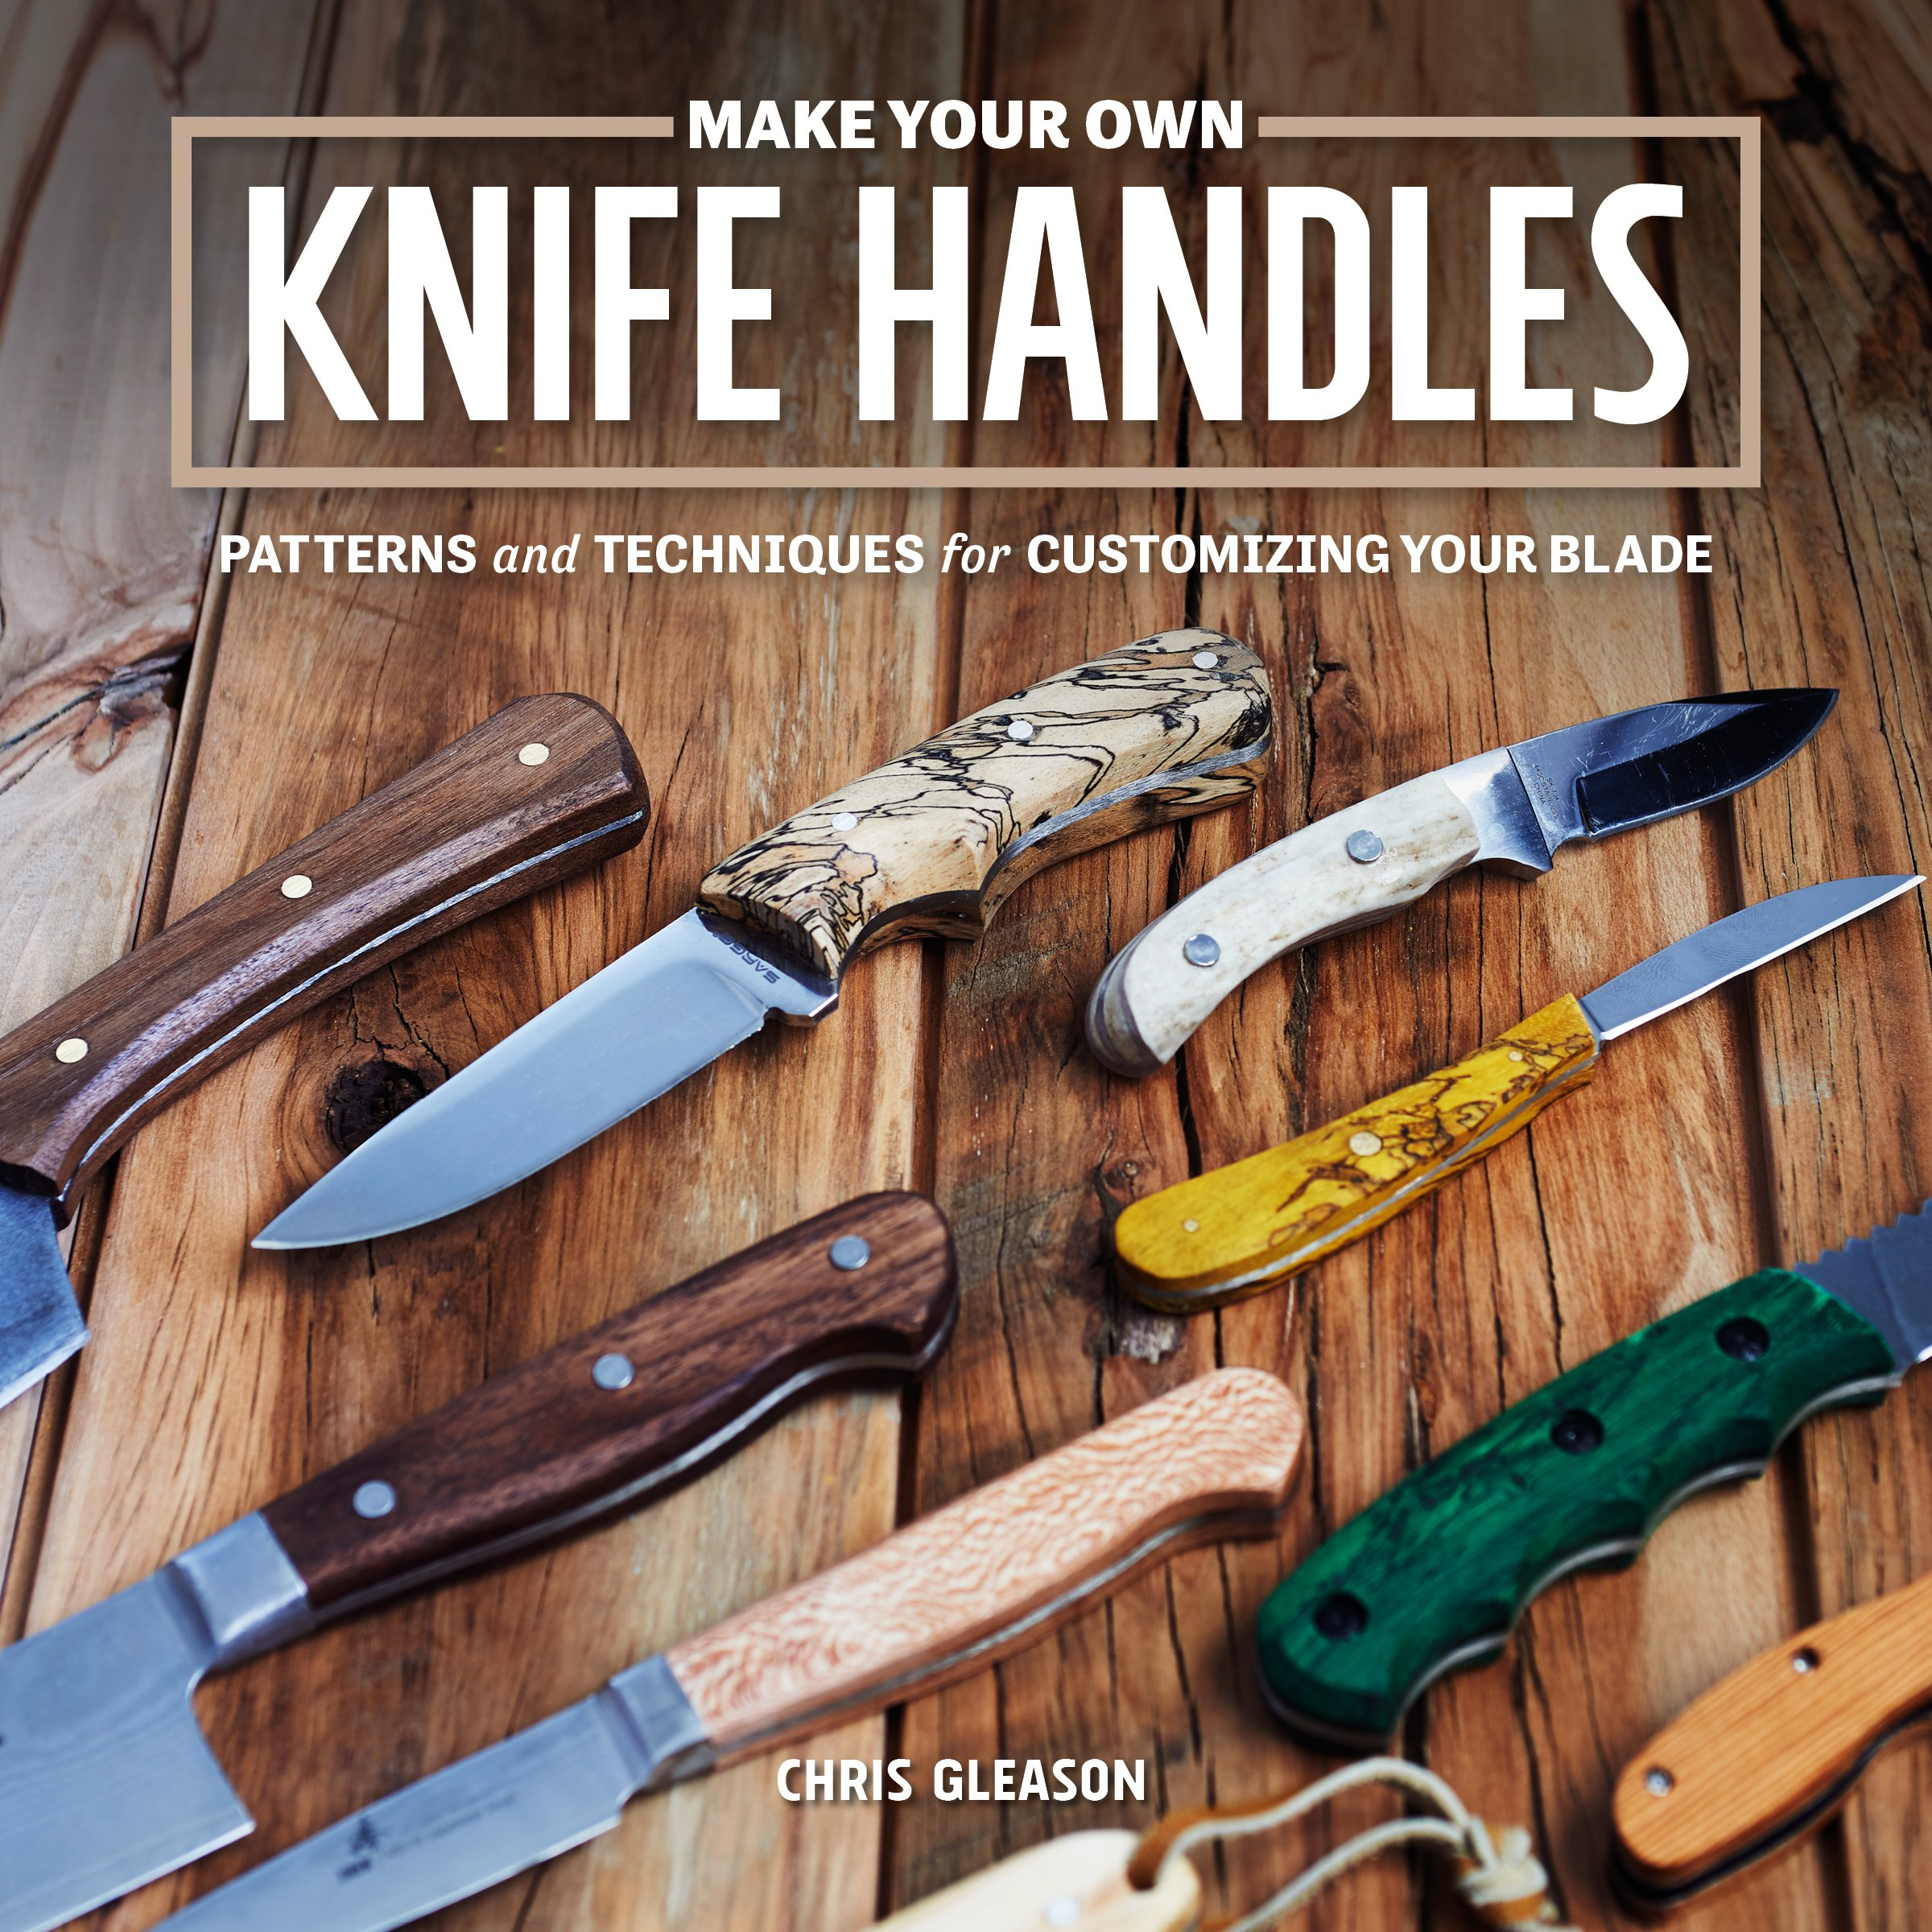 Make Your Own Knife Handles: Patterns and Techniques for Customizing